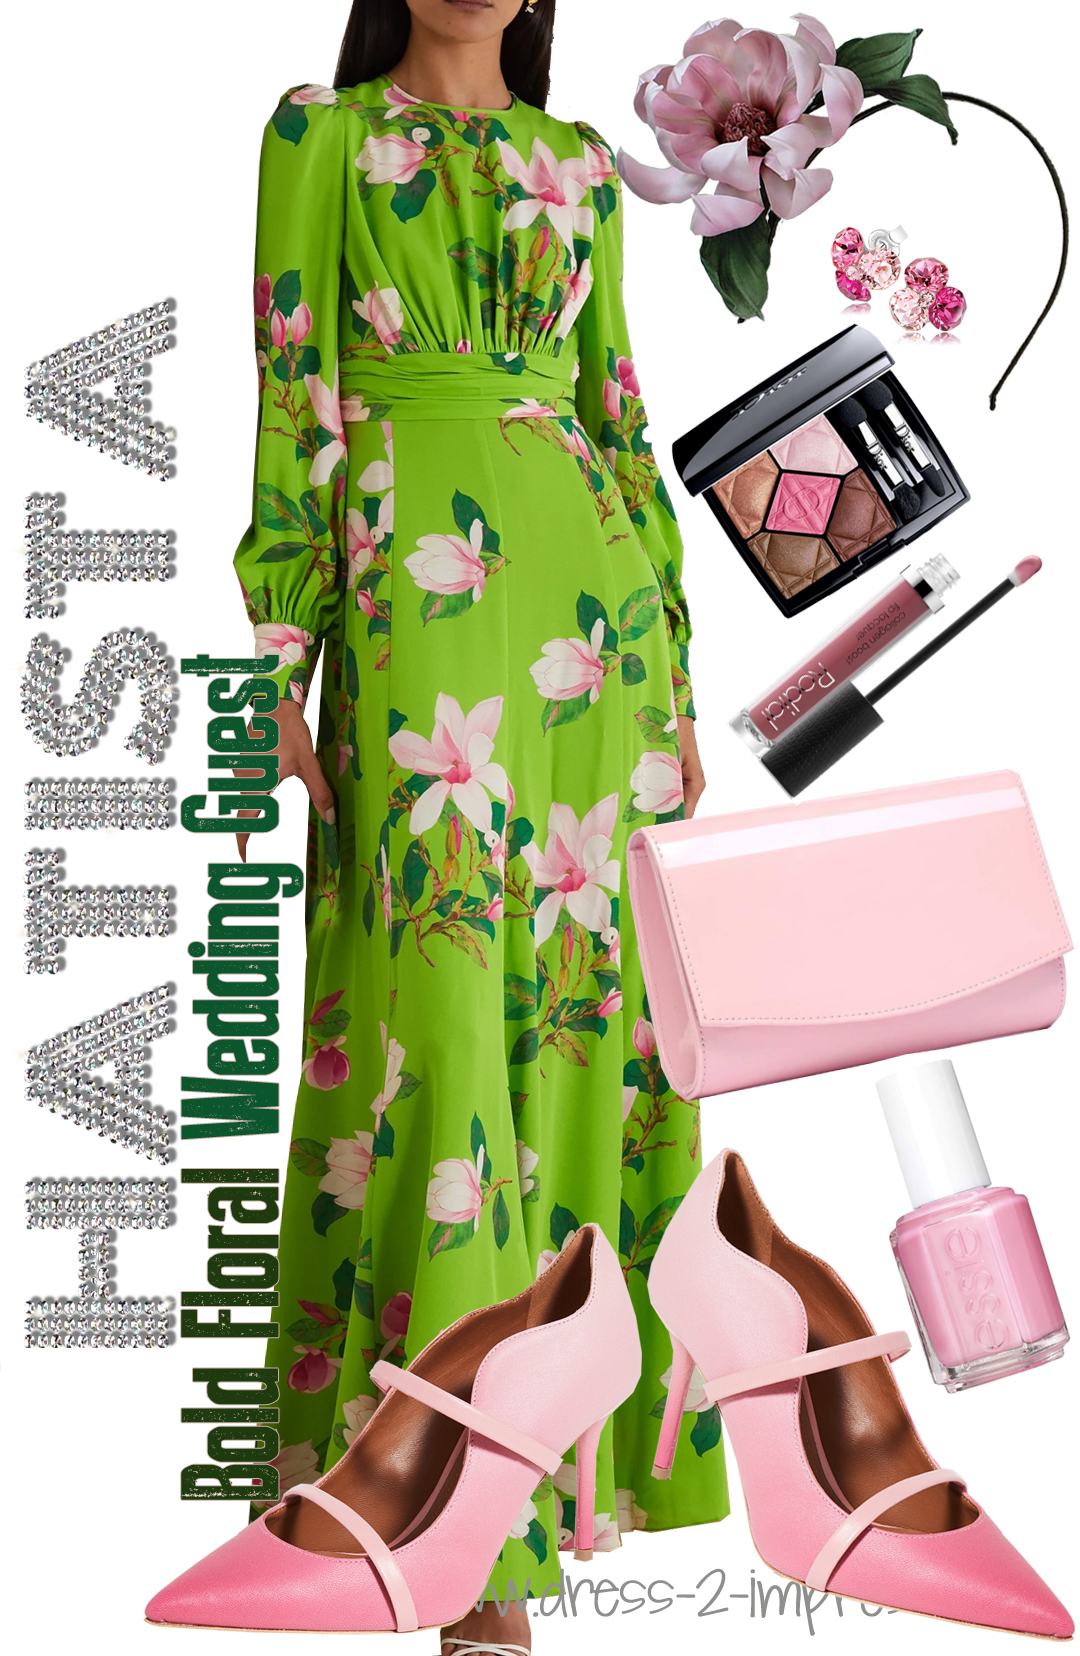 How to Wear Baby Pink. What to wear with a Green Dress. Green and Pink outfit ideas 2020. How to wear Bright Green. What colours go with Baby Pink. Pink outfit ideas. What to wear for a Spring wedding 2021. Spring Wedding Guest Outfit 2021. Pink Floral Kentucky Derby Outfits 2021. Spring Wedding outfit ideas 2021.